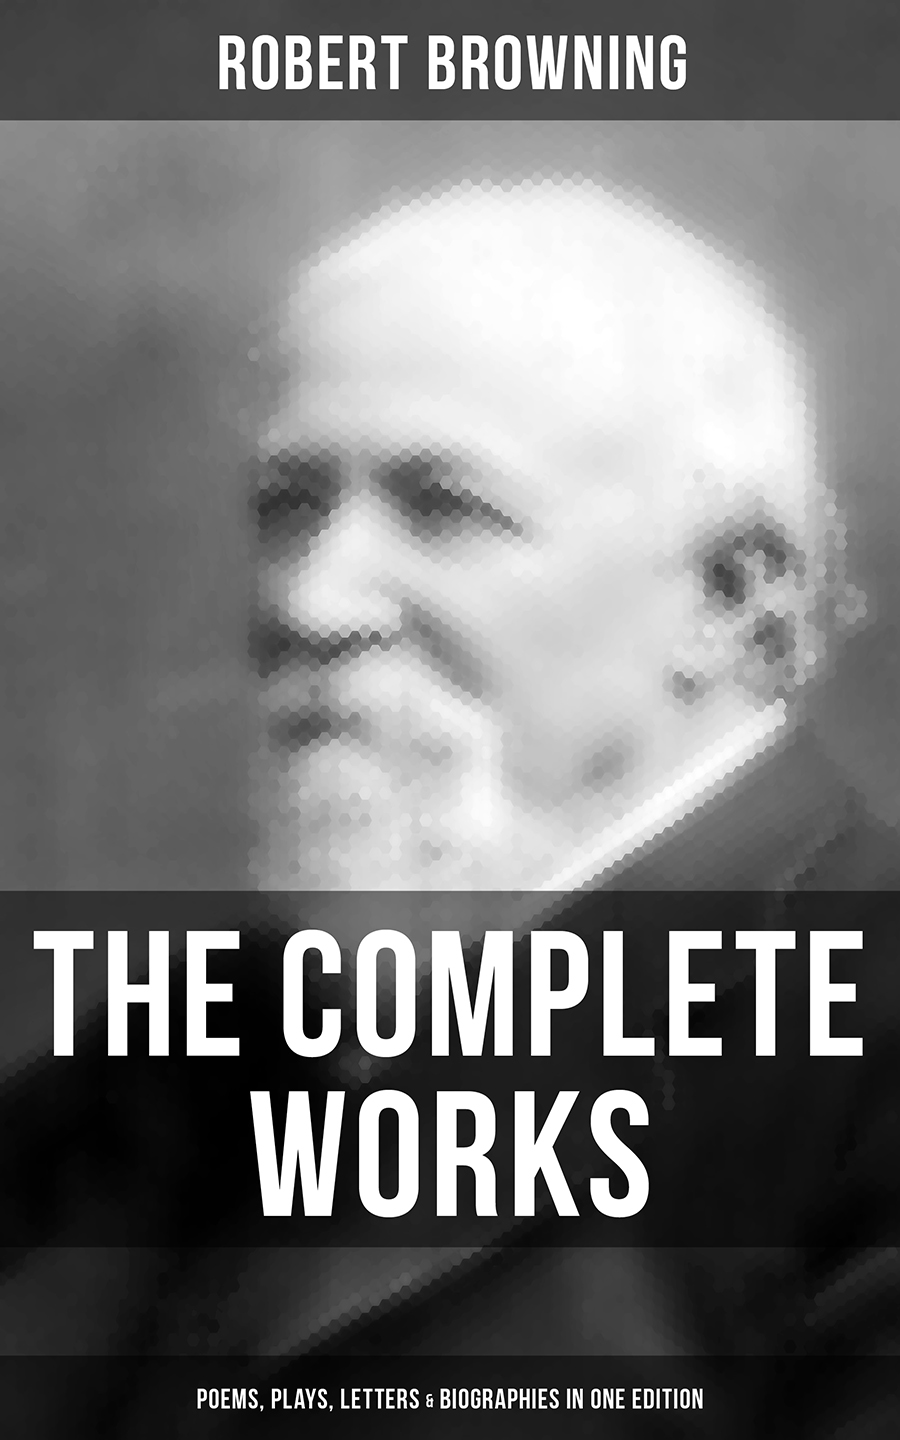 Robert Browning The Complete Works of Robert Browning: Poems, Plays, Letters & Biographies in One Edition цена и фото